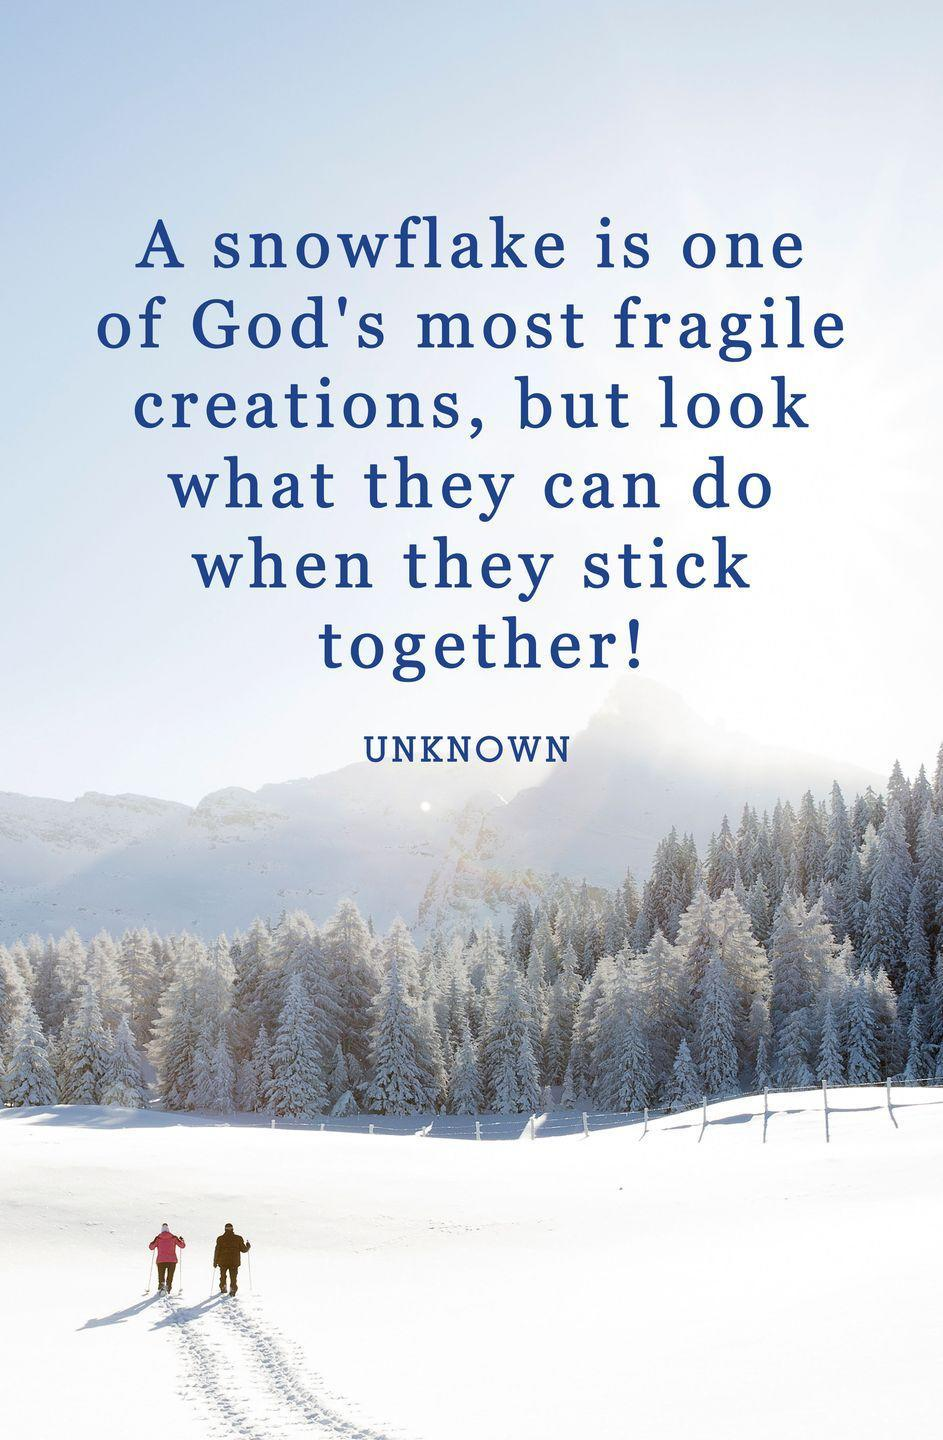 "<p>""A snowflake is one of God's most fragile creations, but look what they can do when they stick together!""</p>"